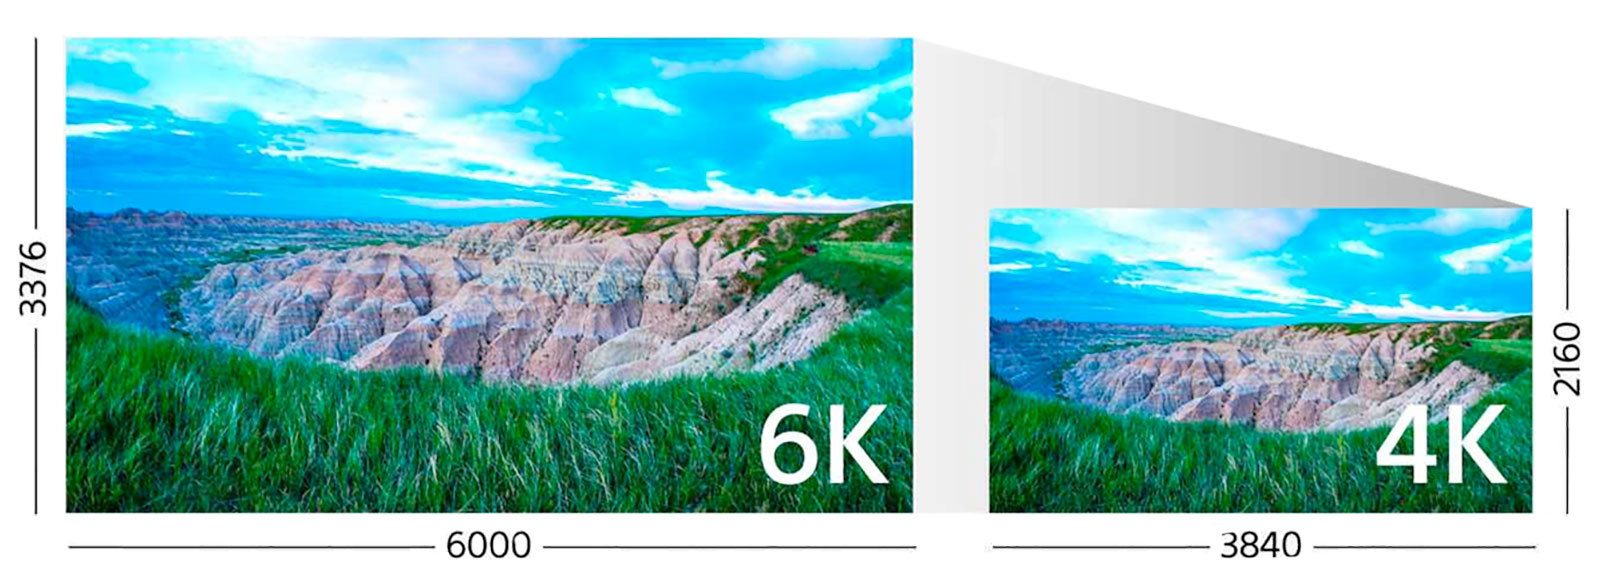 sony-a9-oversampled-4k